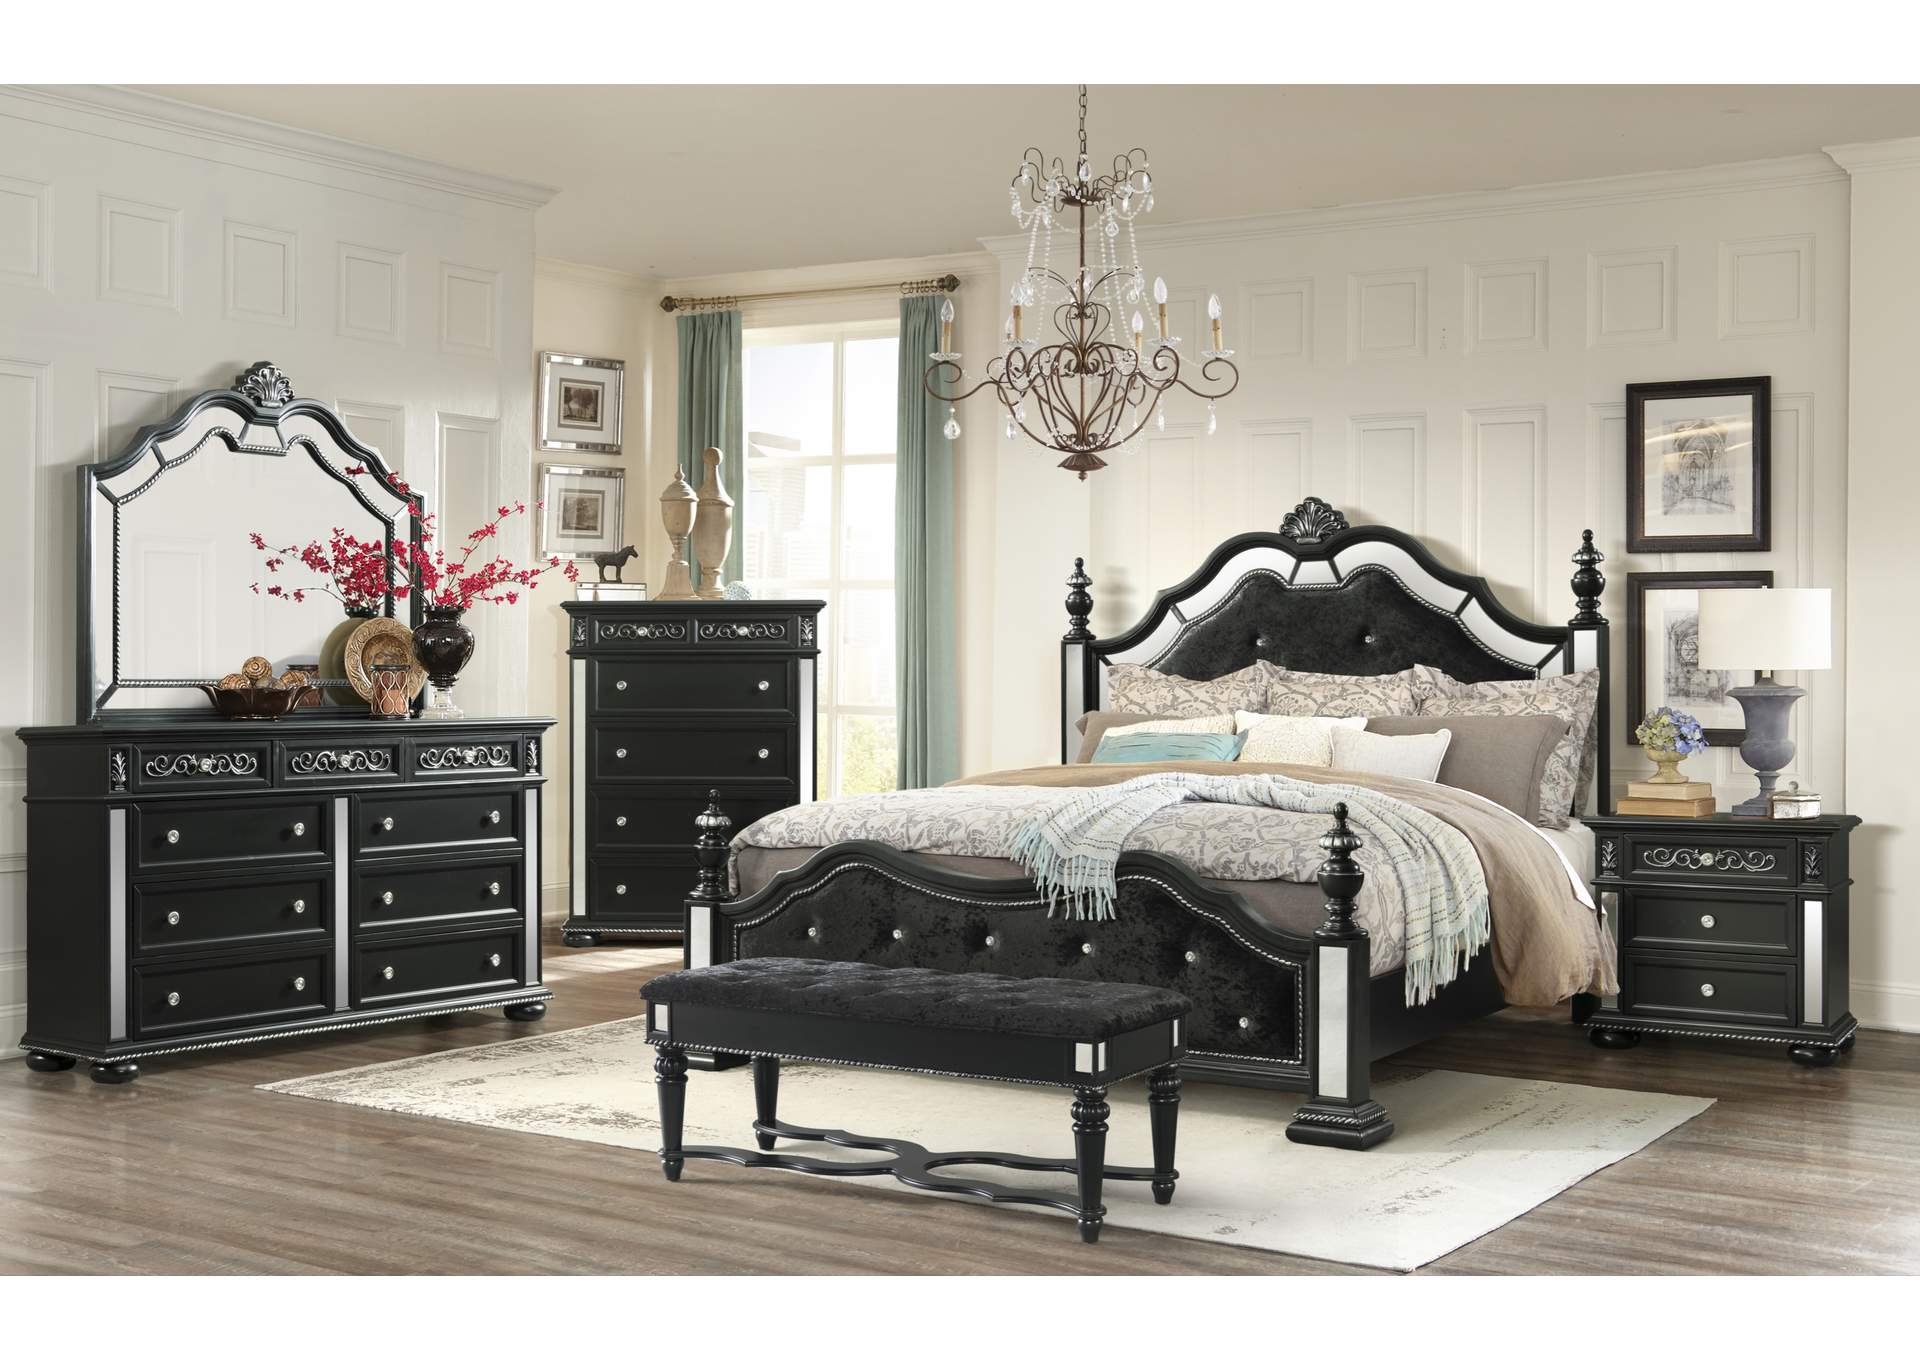 Diana Black Queen Poster Bed w/Dresser and Mirror,Global Furniture USA